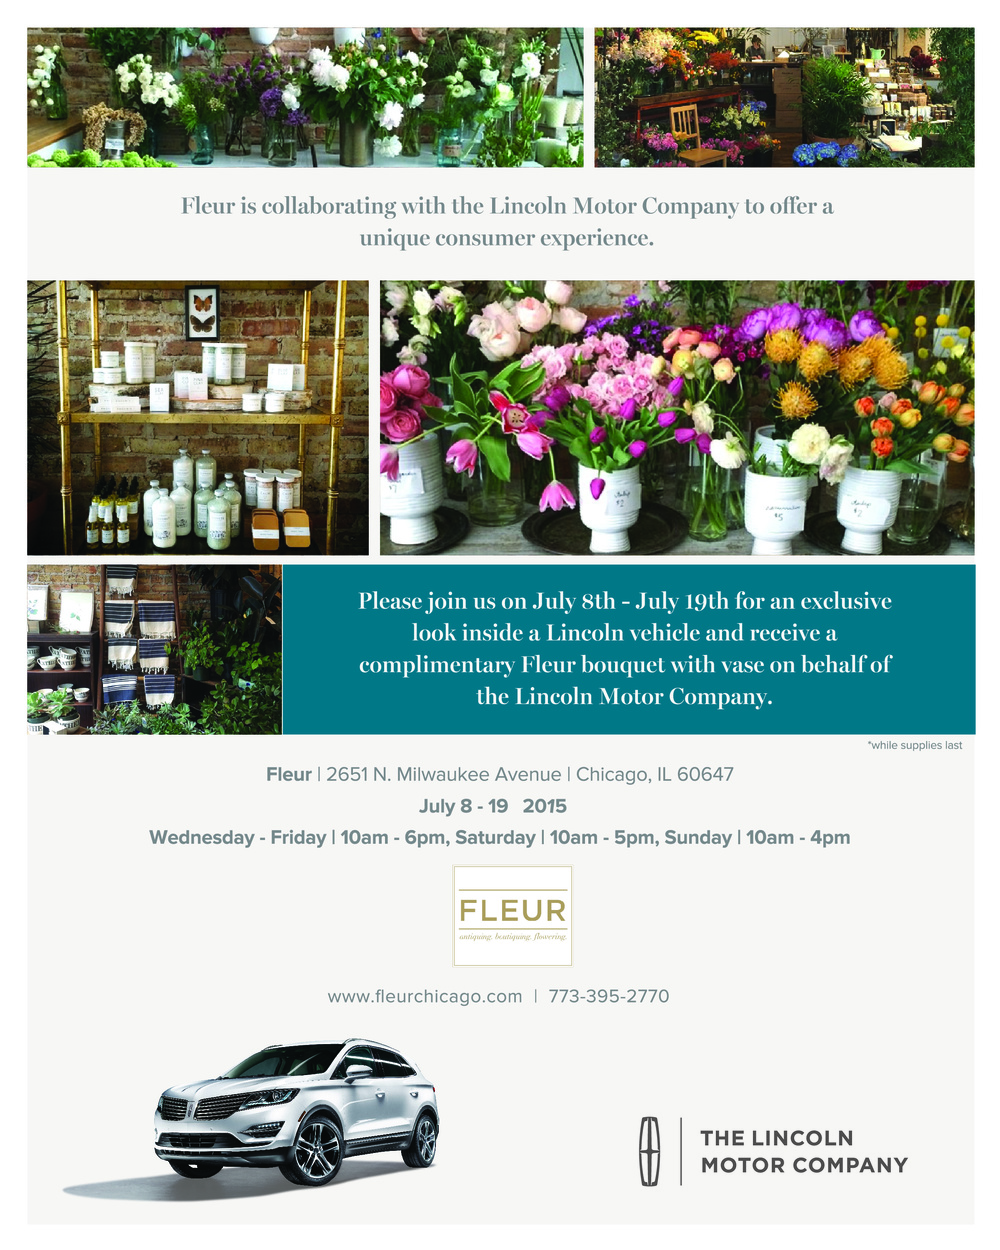 Lincoln Motor Partners with Fleur Inc